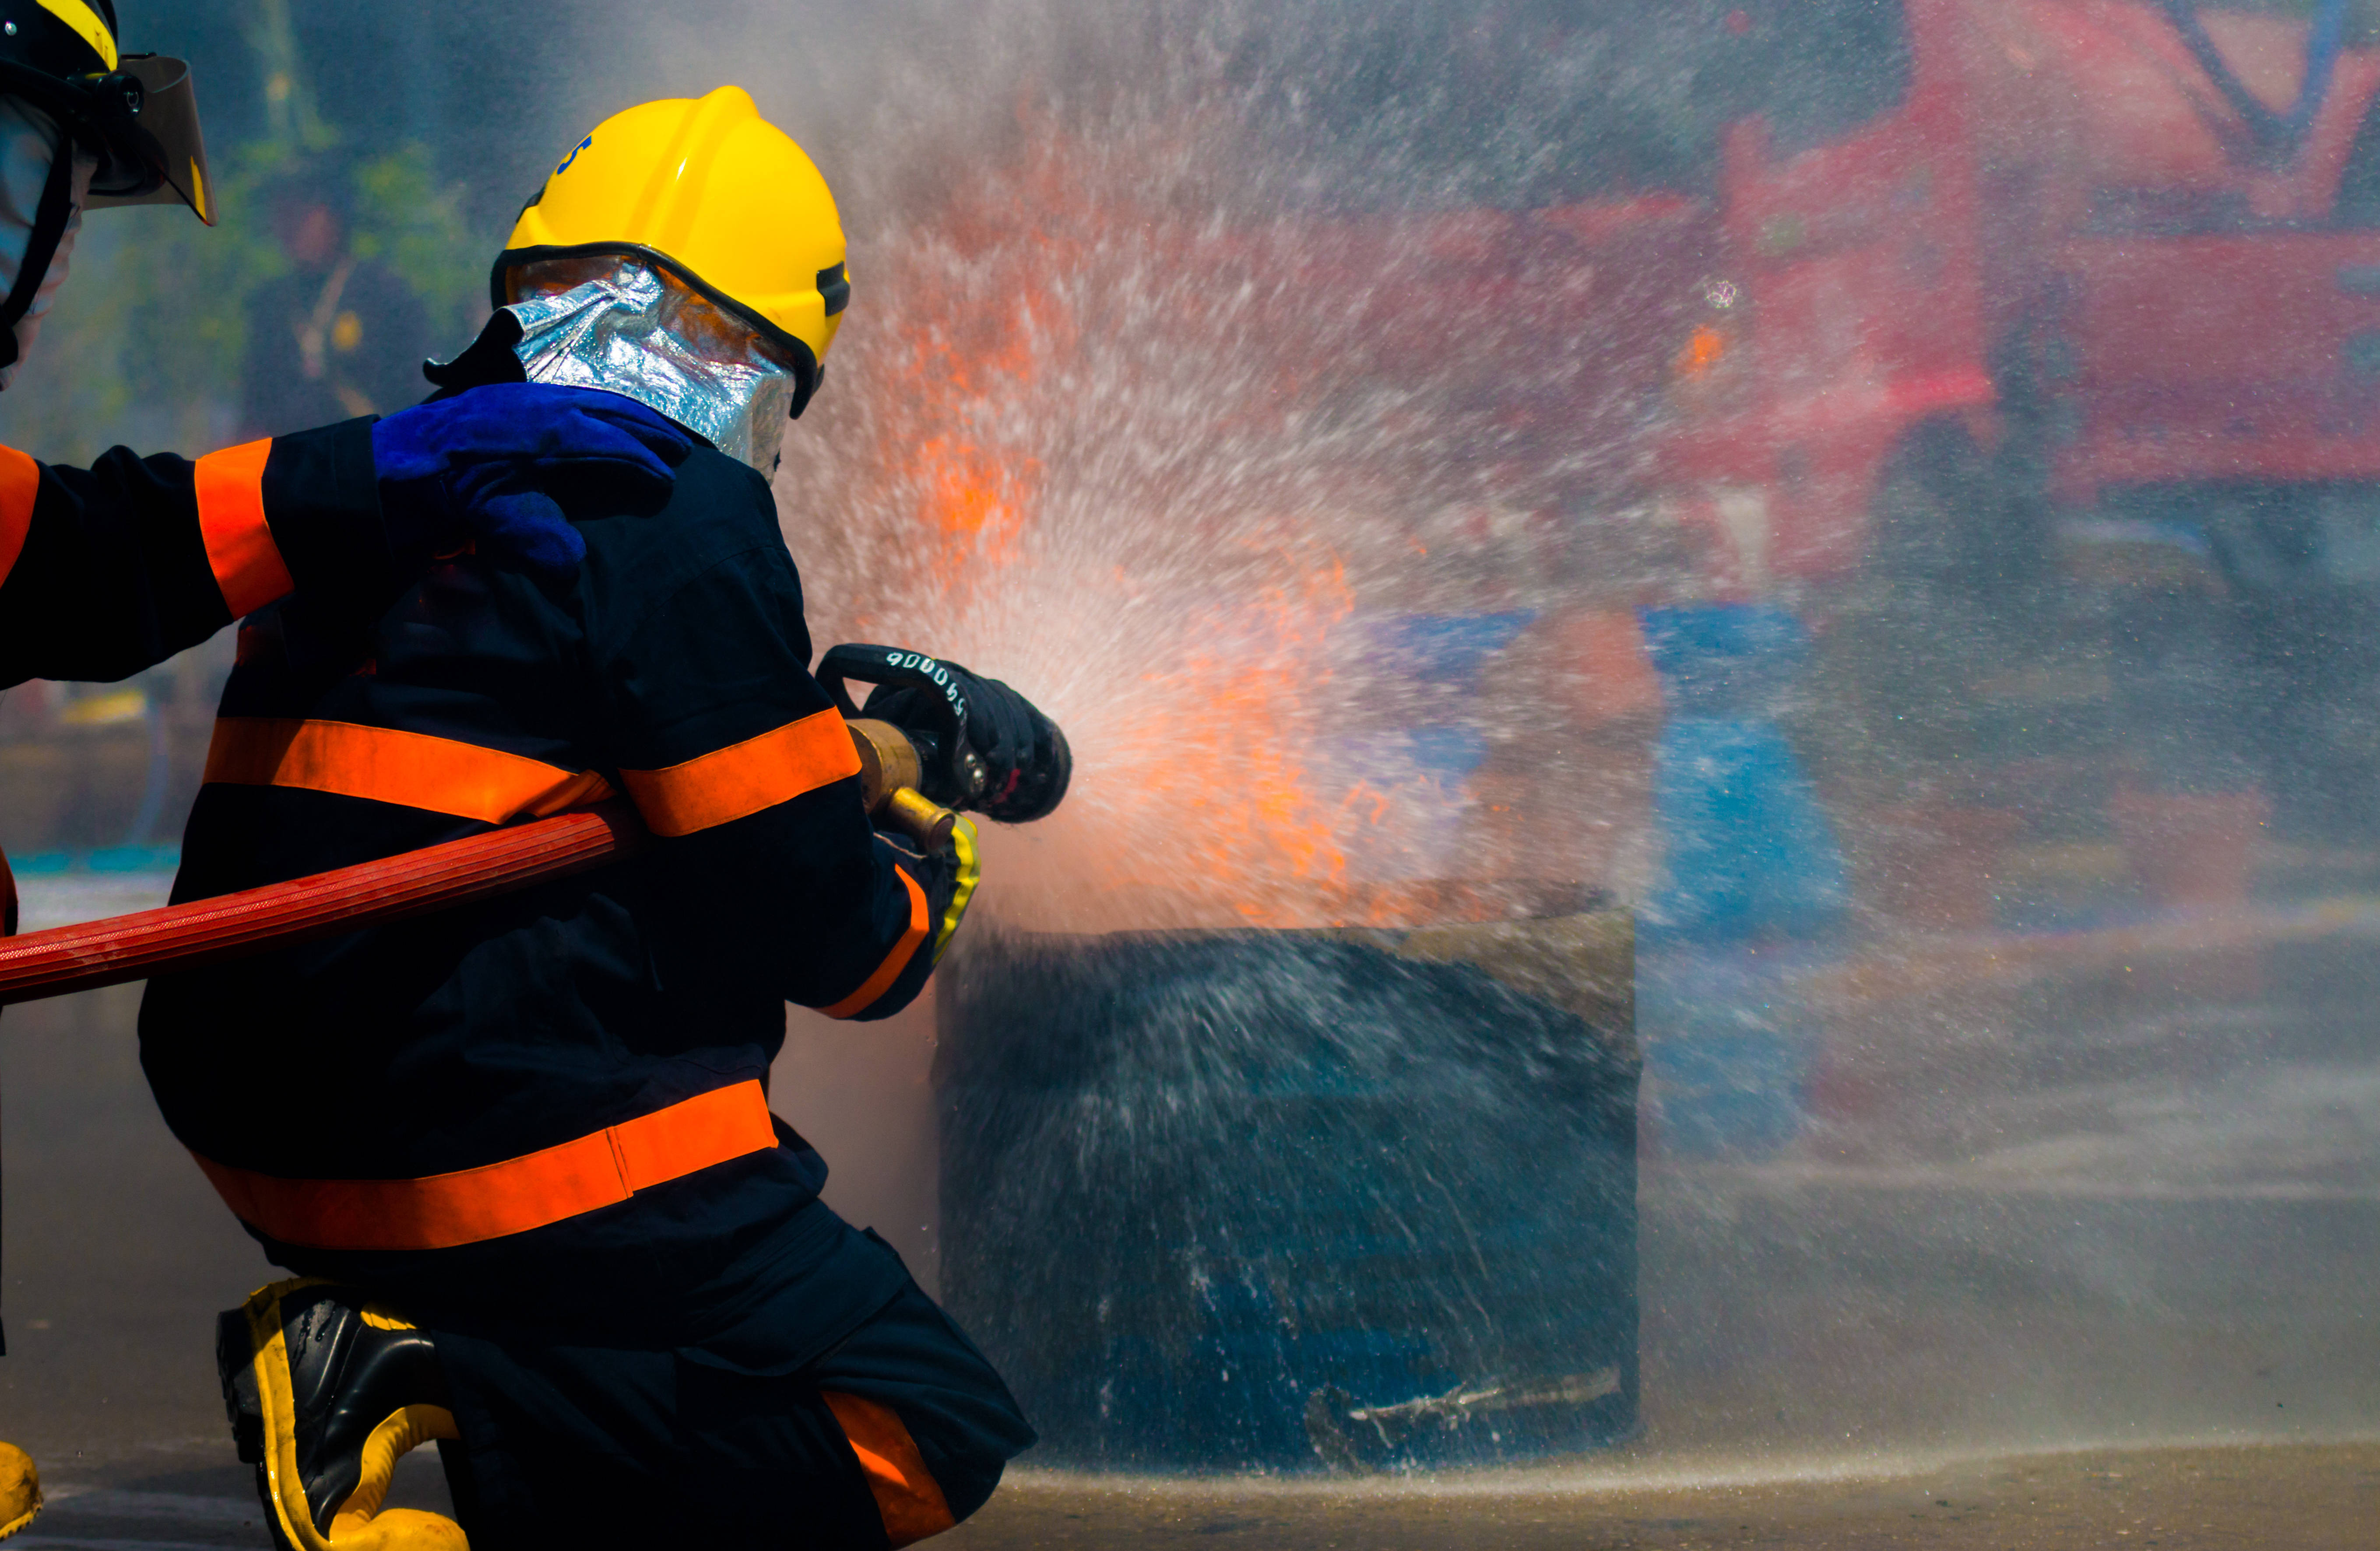 Take Safety Into Your Own Hands This October During National Fire Prevention Month